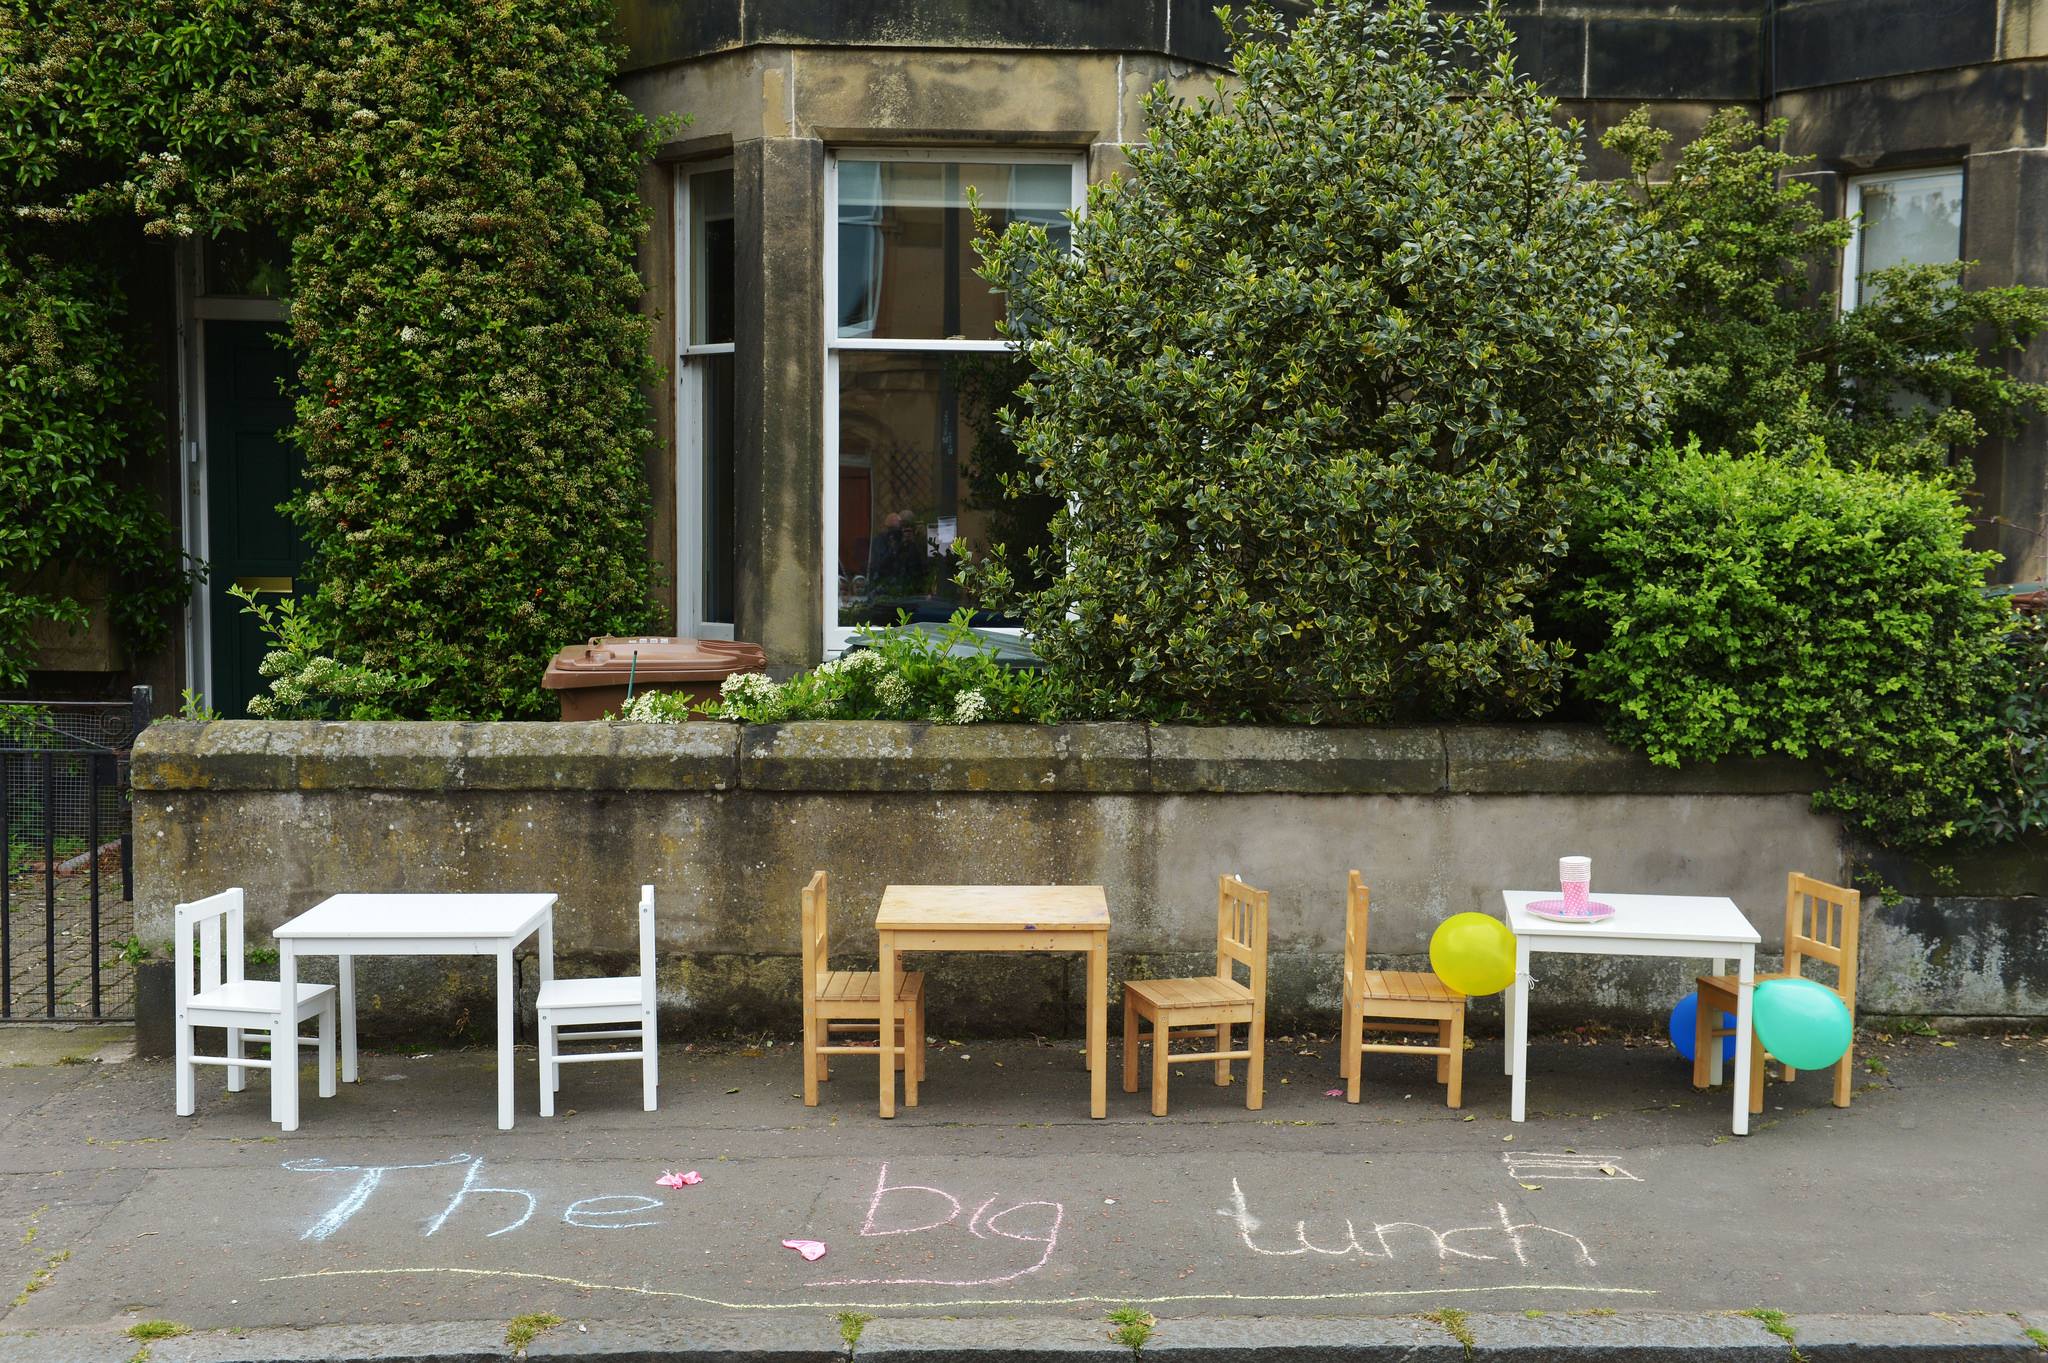 Photo of chairs set up for Big Lunch